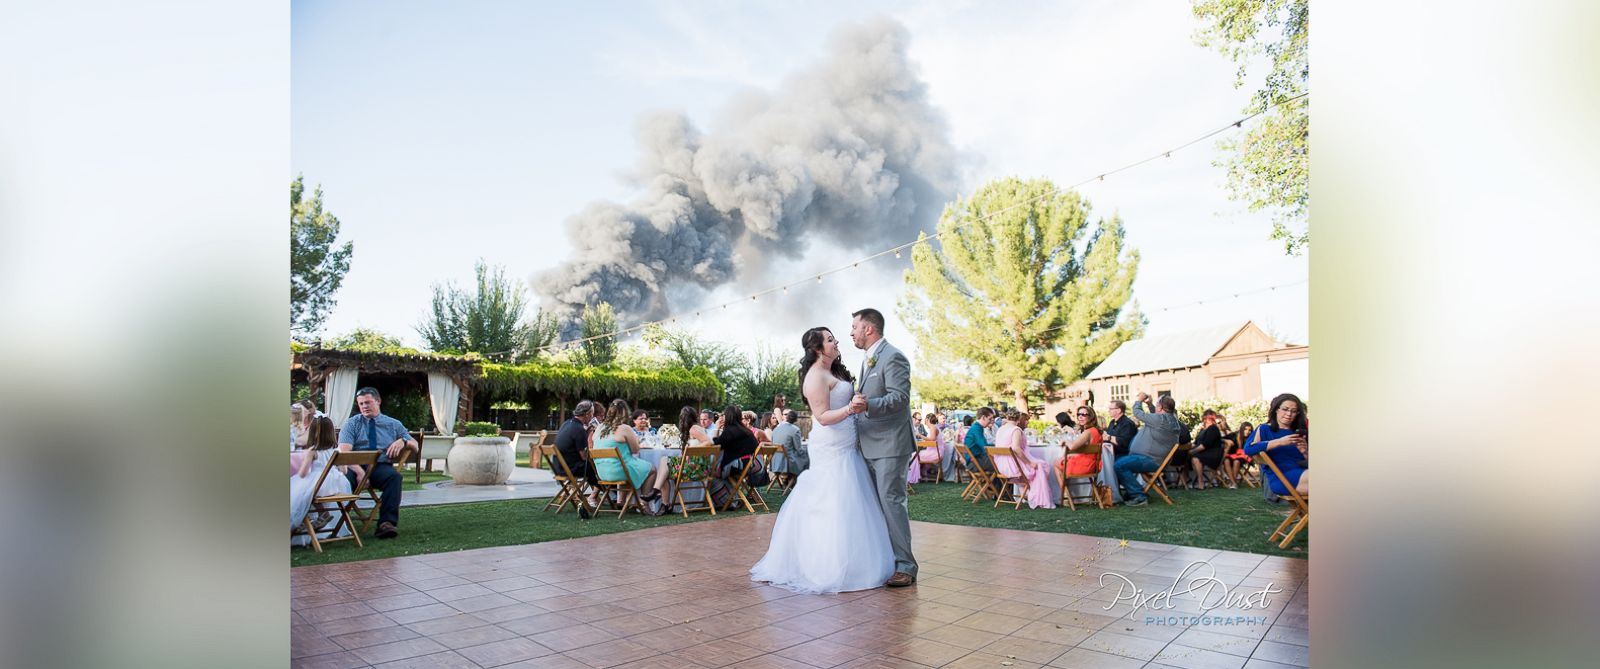 PHOTO: J.T. and Carly Morrissey scored memorable wedding photos thanks to a nearby fire Saturday, April 23 in Gilbert, Ariz.